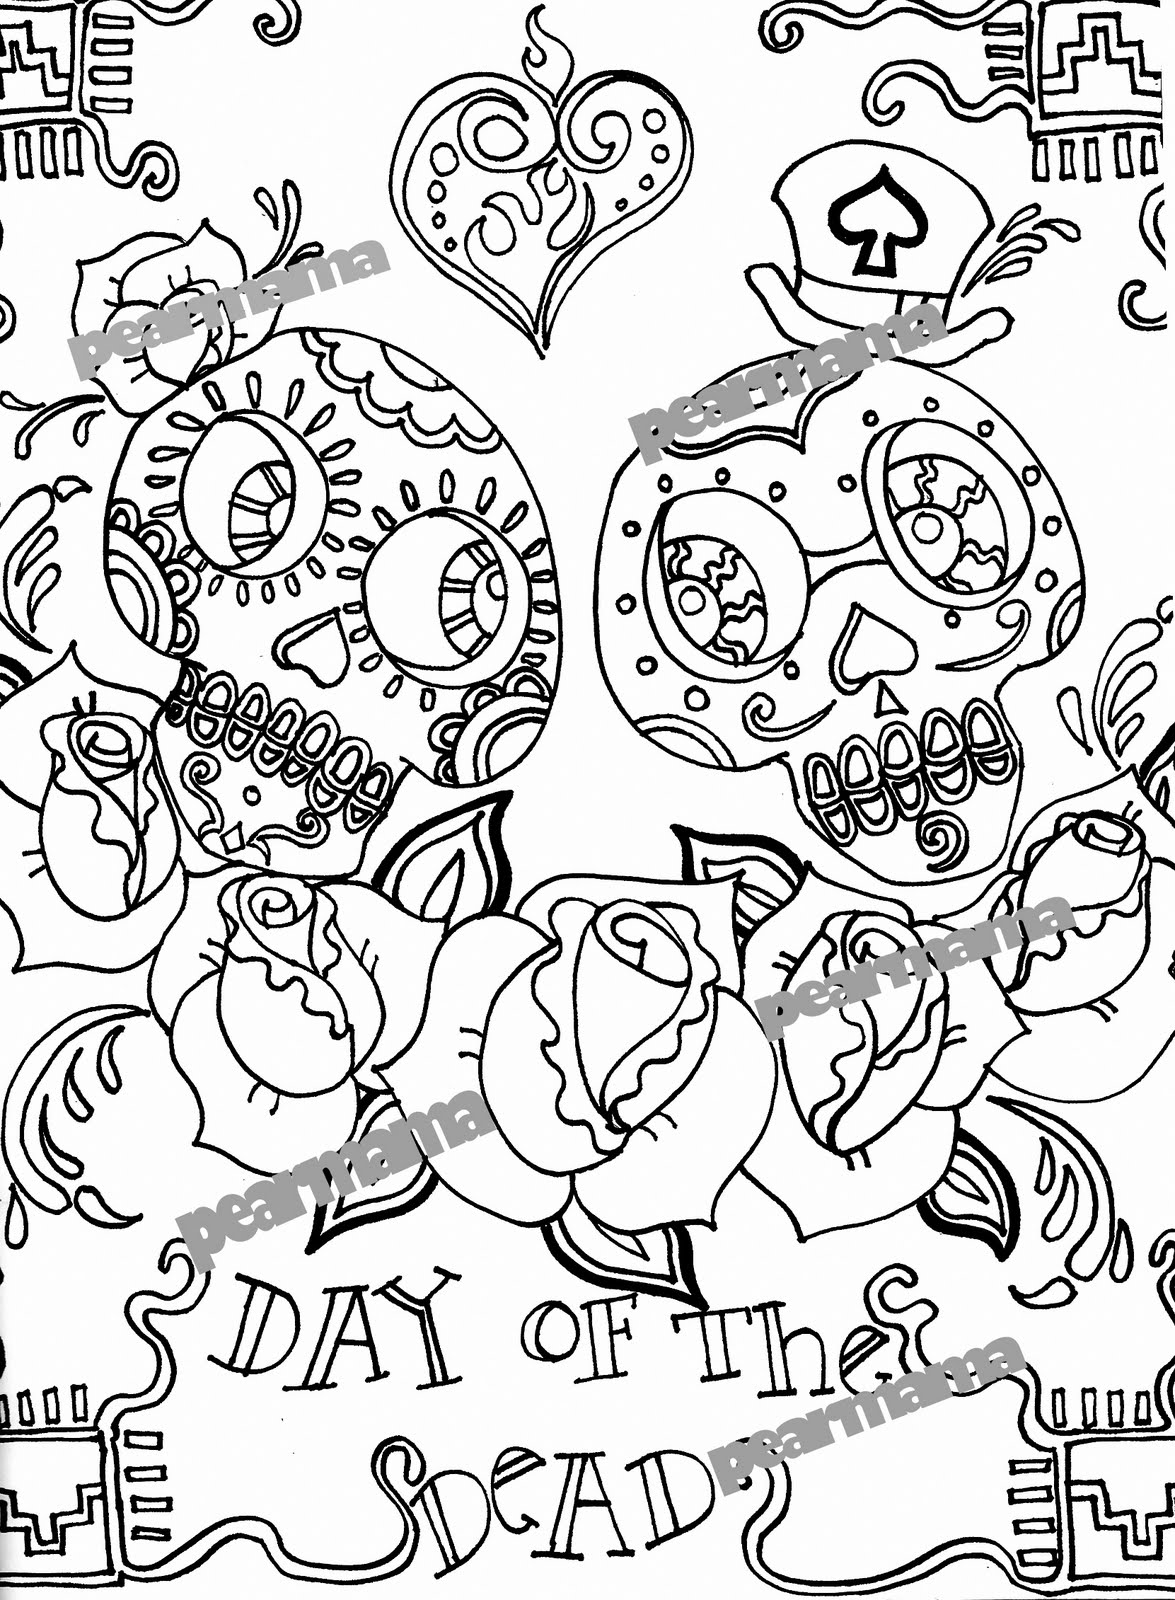 day of the dead printable coloring pages free printable day of the dead coloring pages best printable dead pages coloring the of day